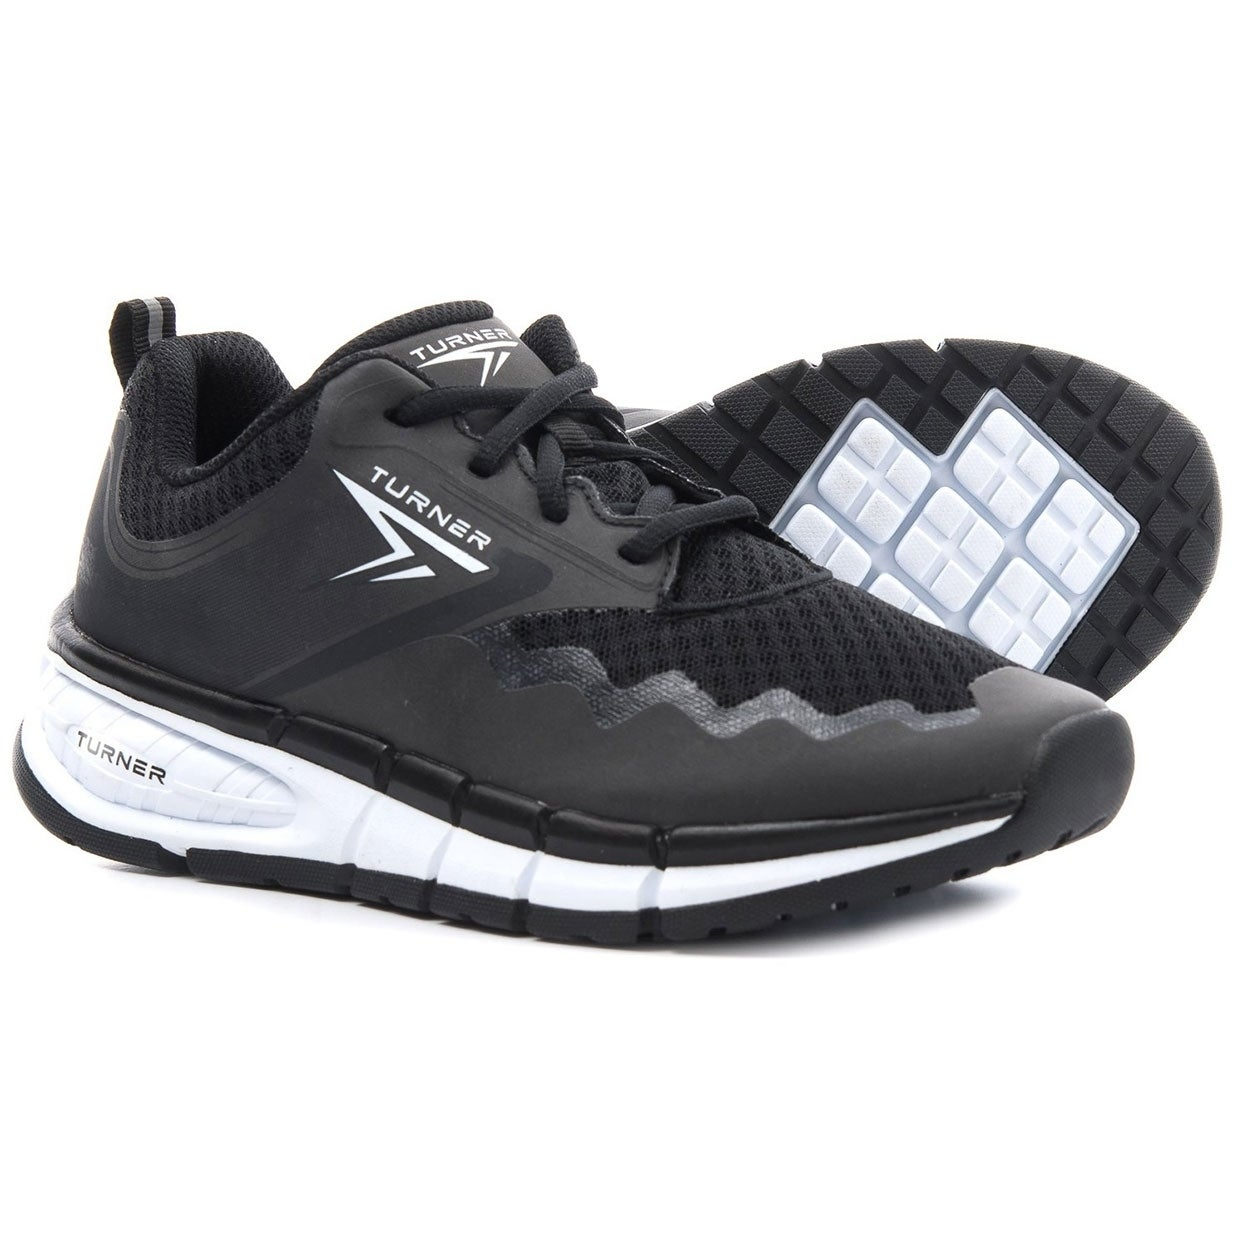 Turner T Legacy Running Shoes